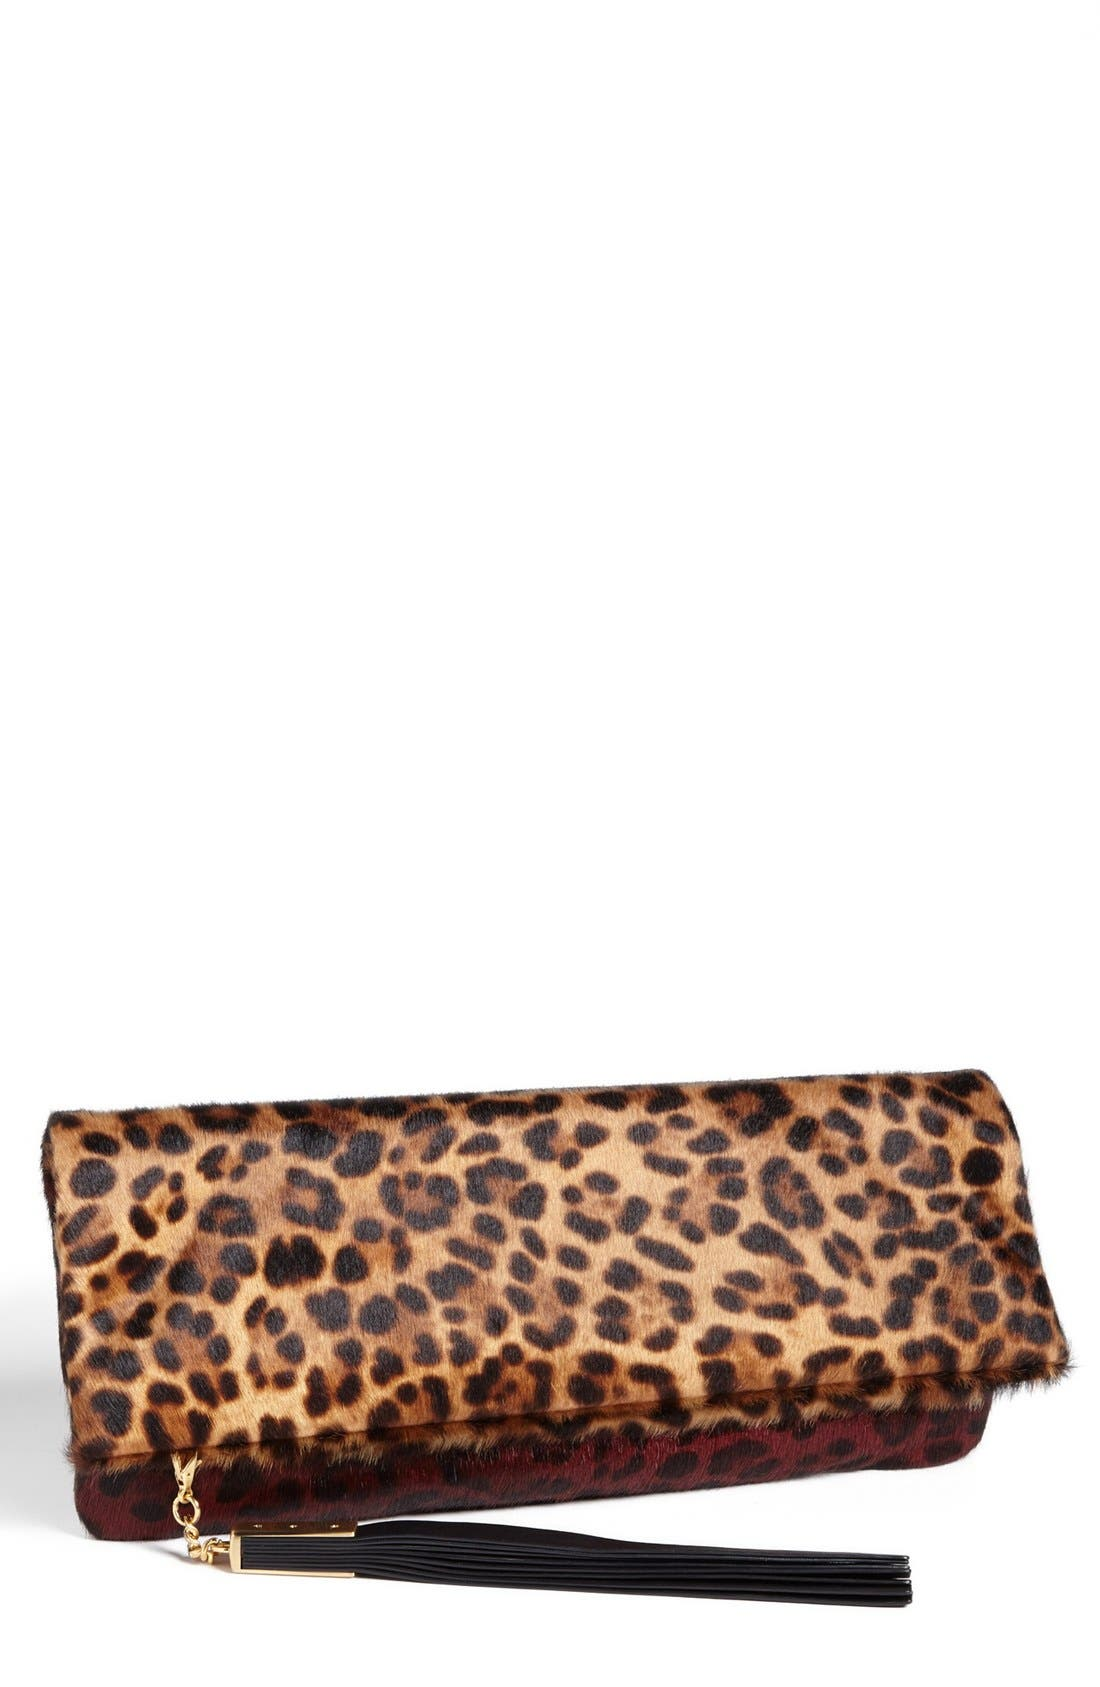 Alternate Image 1 Selected - B Brian Atwood 'Robin' Genuine Calf Hair Foldover Clutch